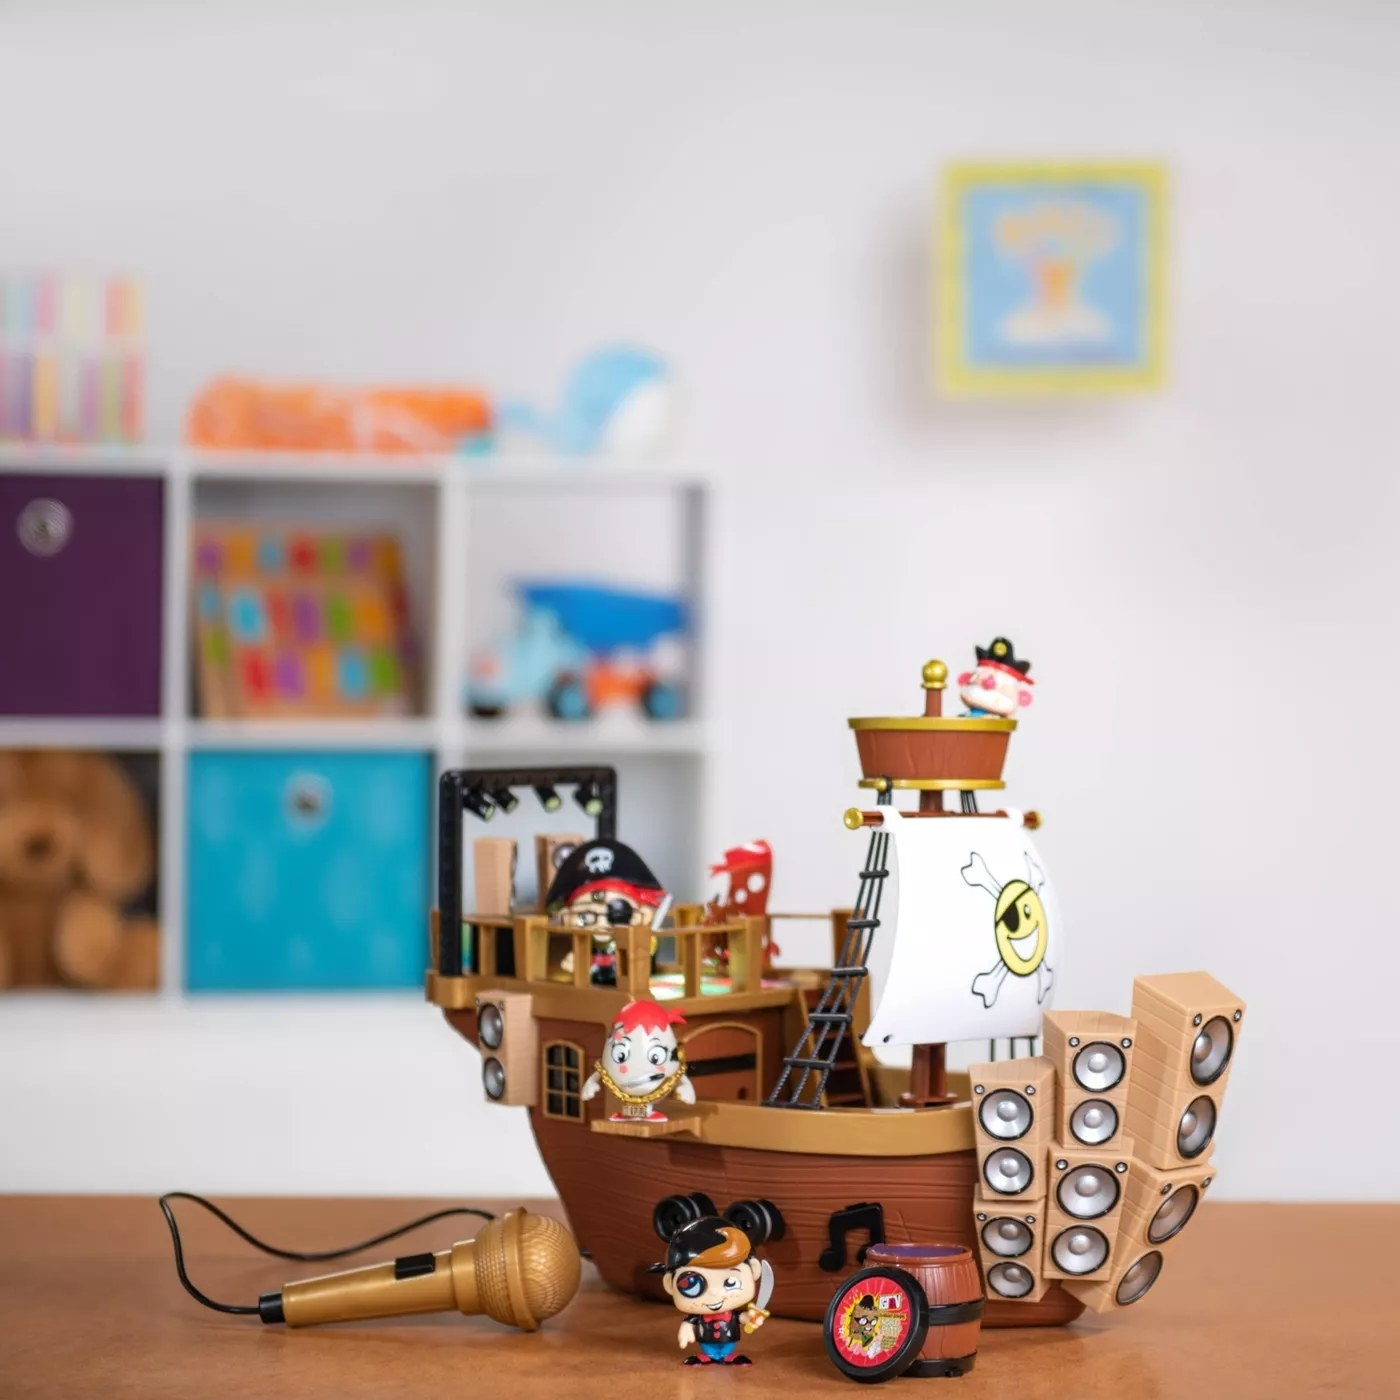 The toy ship